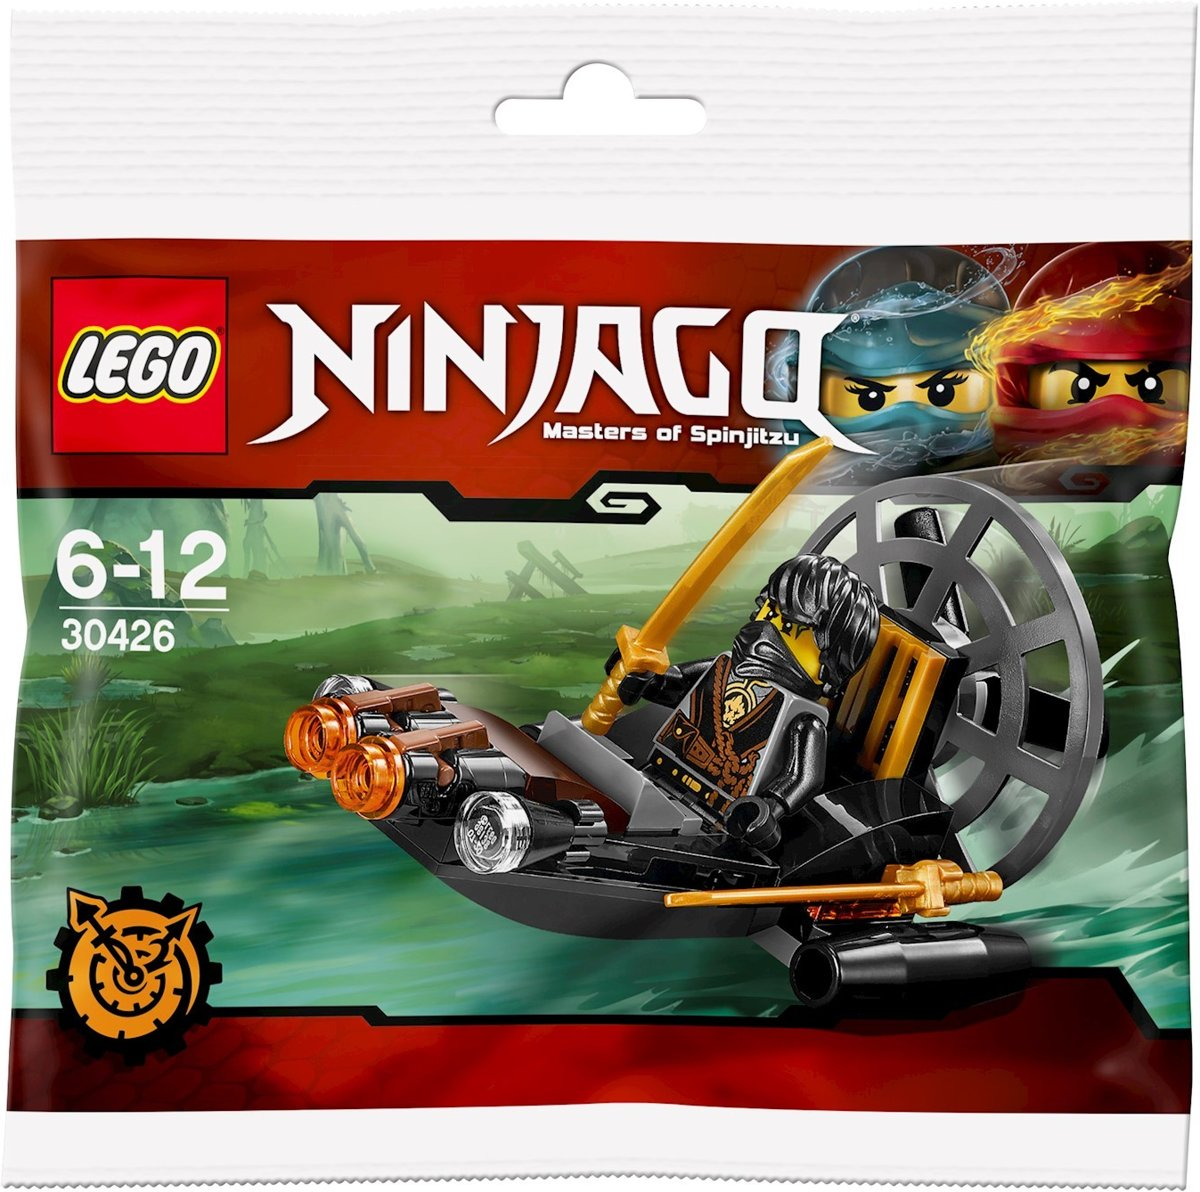 LEGO NINJAGO Stealthy Swamp Airboat - 30426